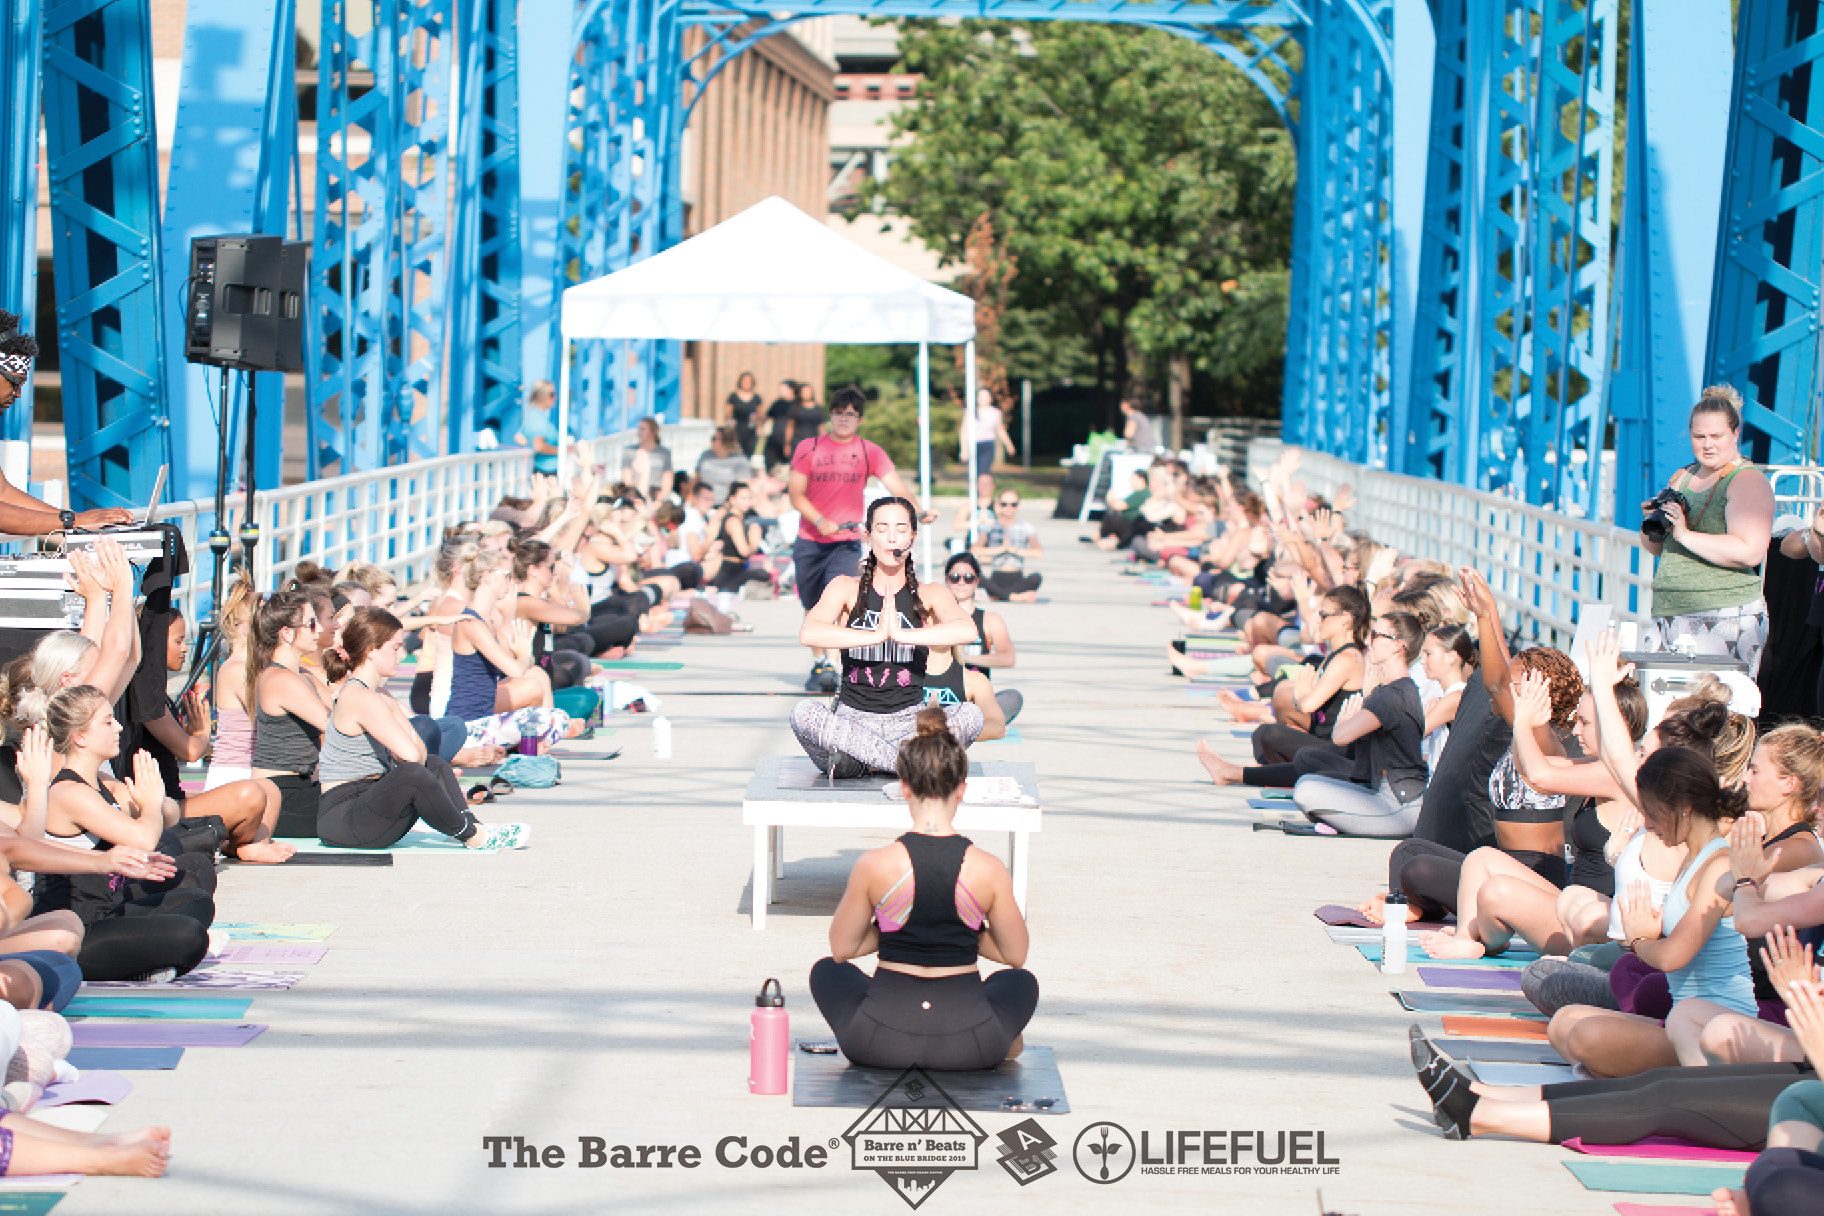 190805_the_barre_code_lifefuel_61.jpg